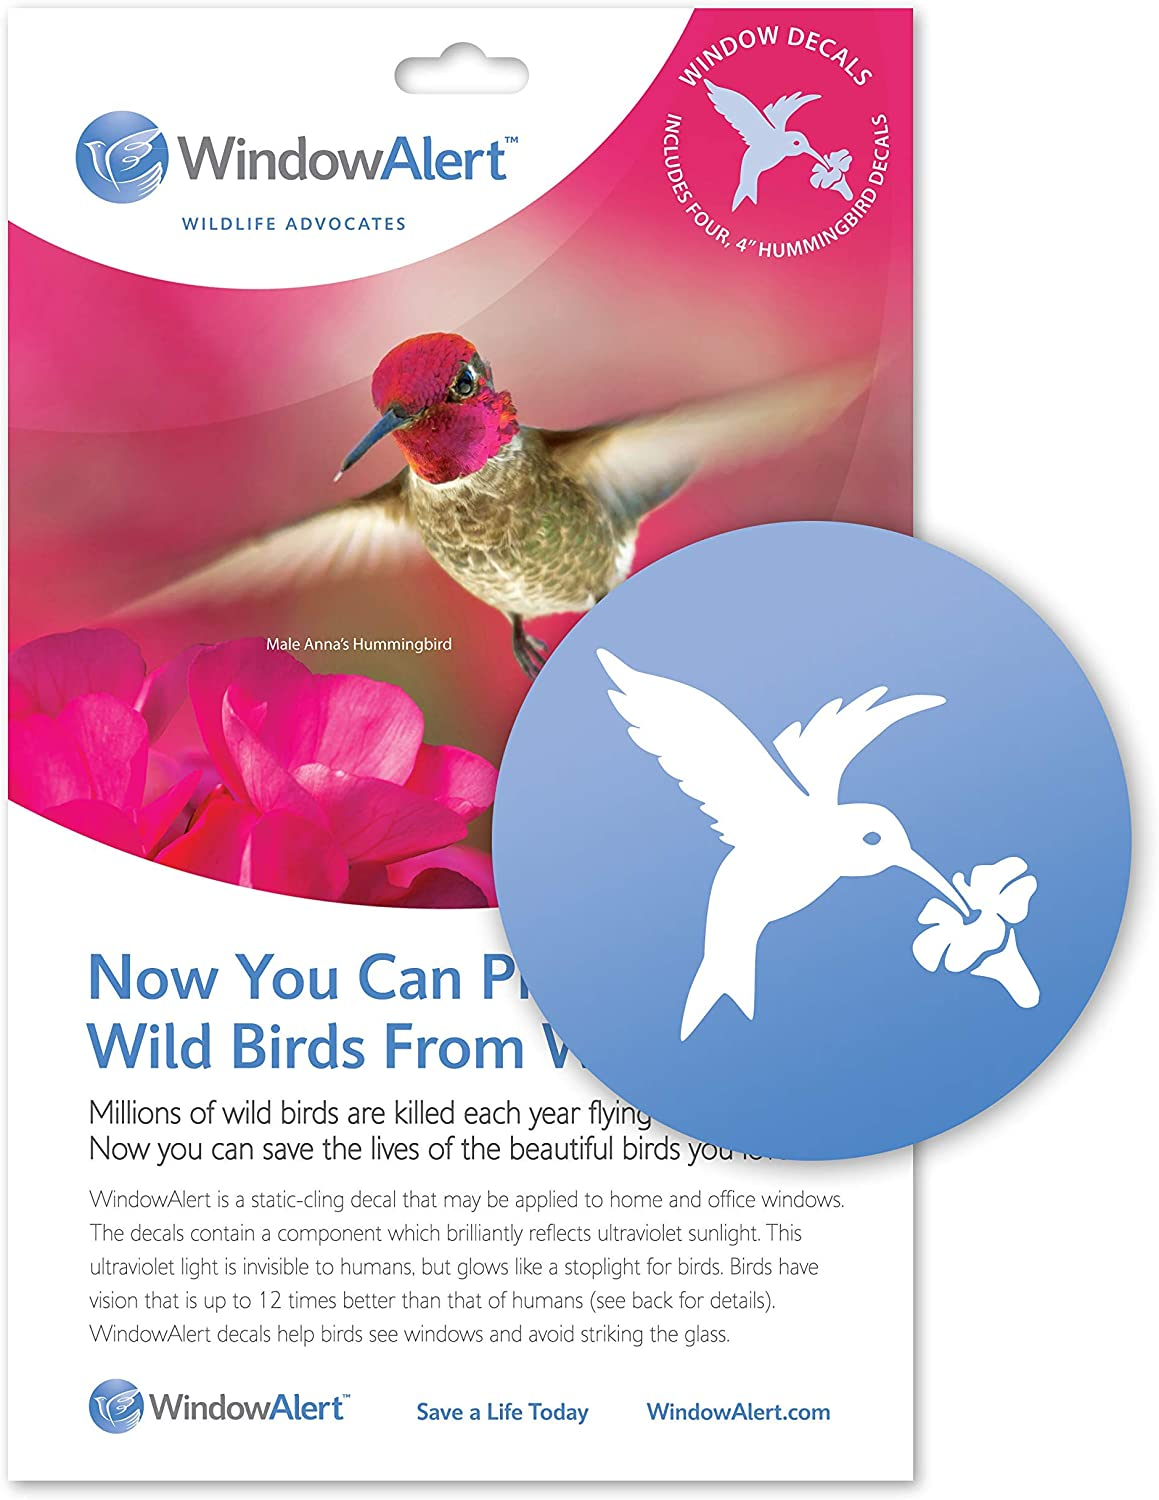 Protect Wild Birds from window strikes by using WindowAlert Butterfly decals